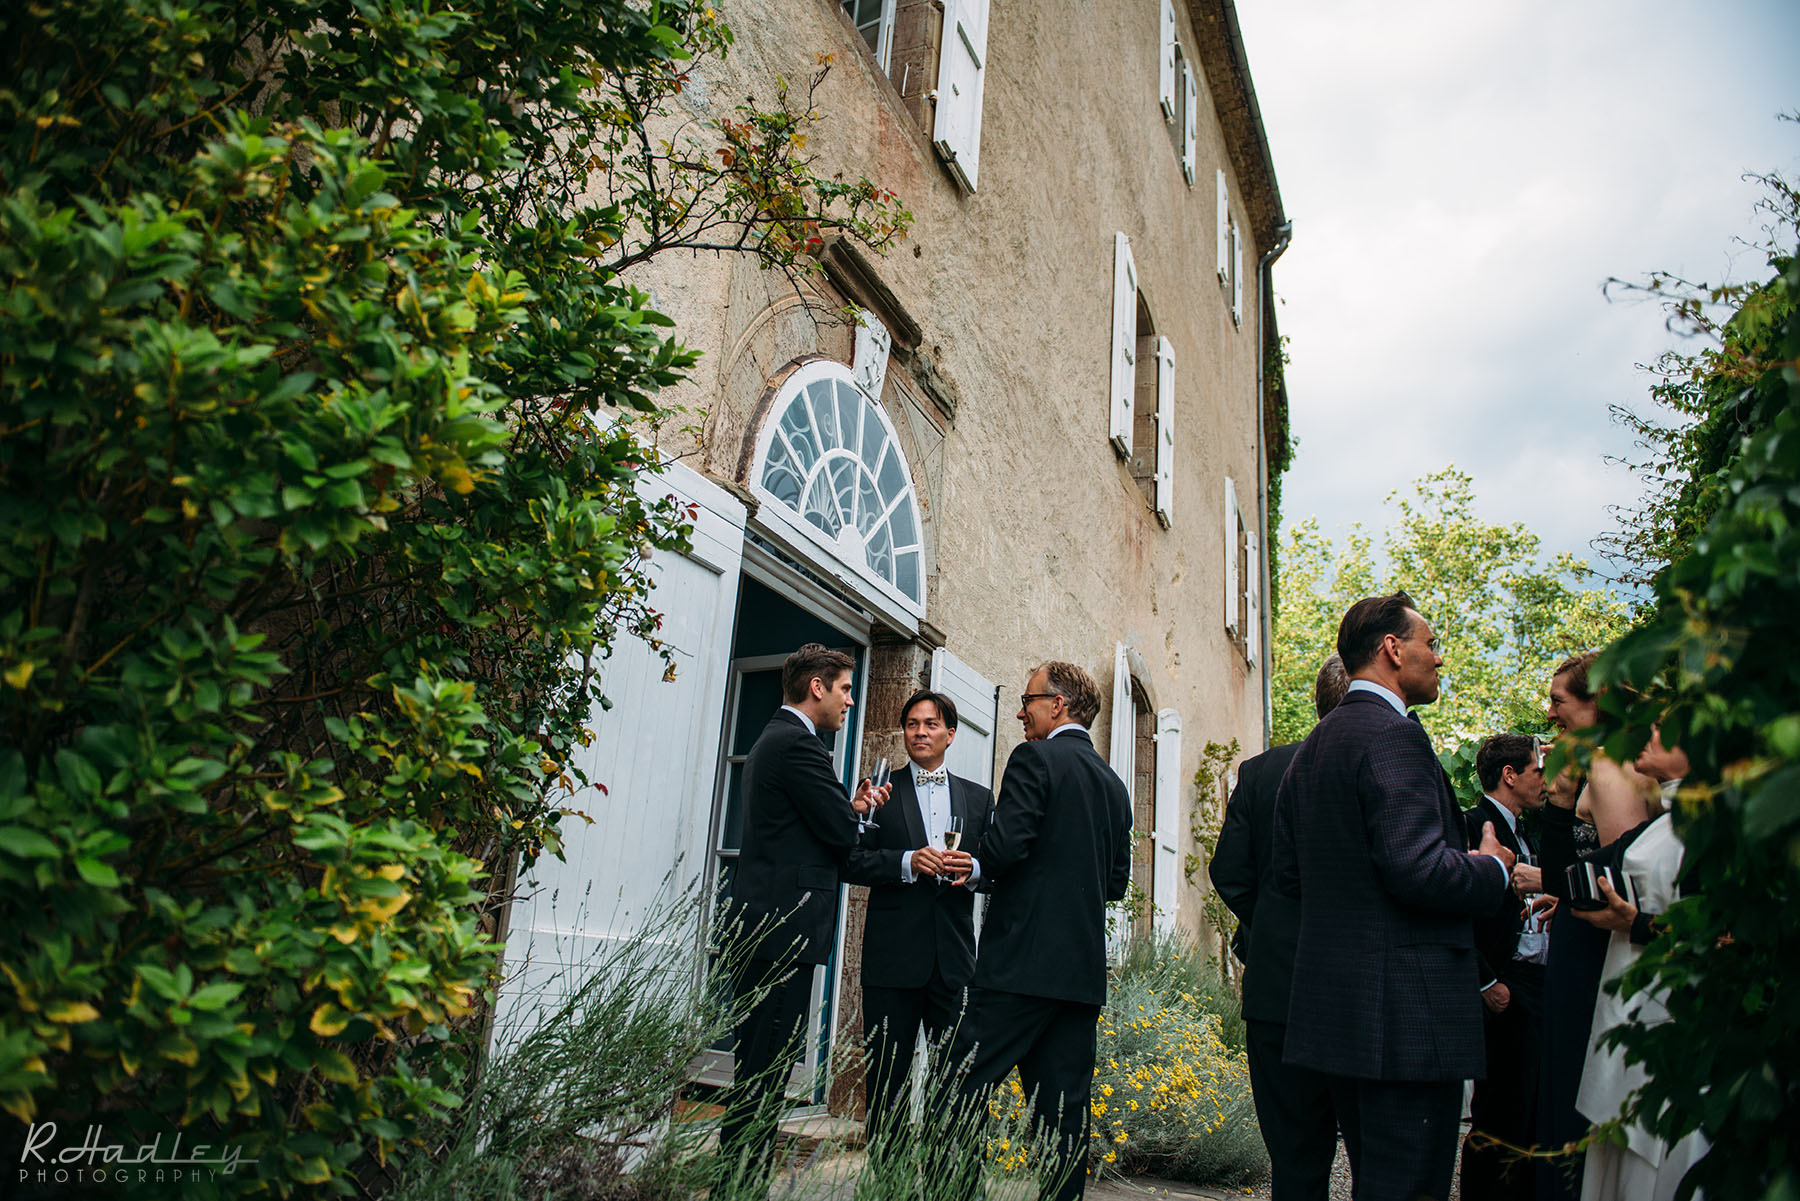 L'Abbaye-Chateau de Camon, France. Event and wedding photographer